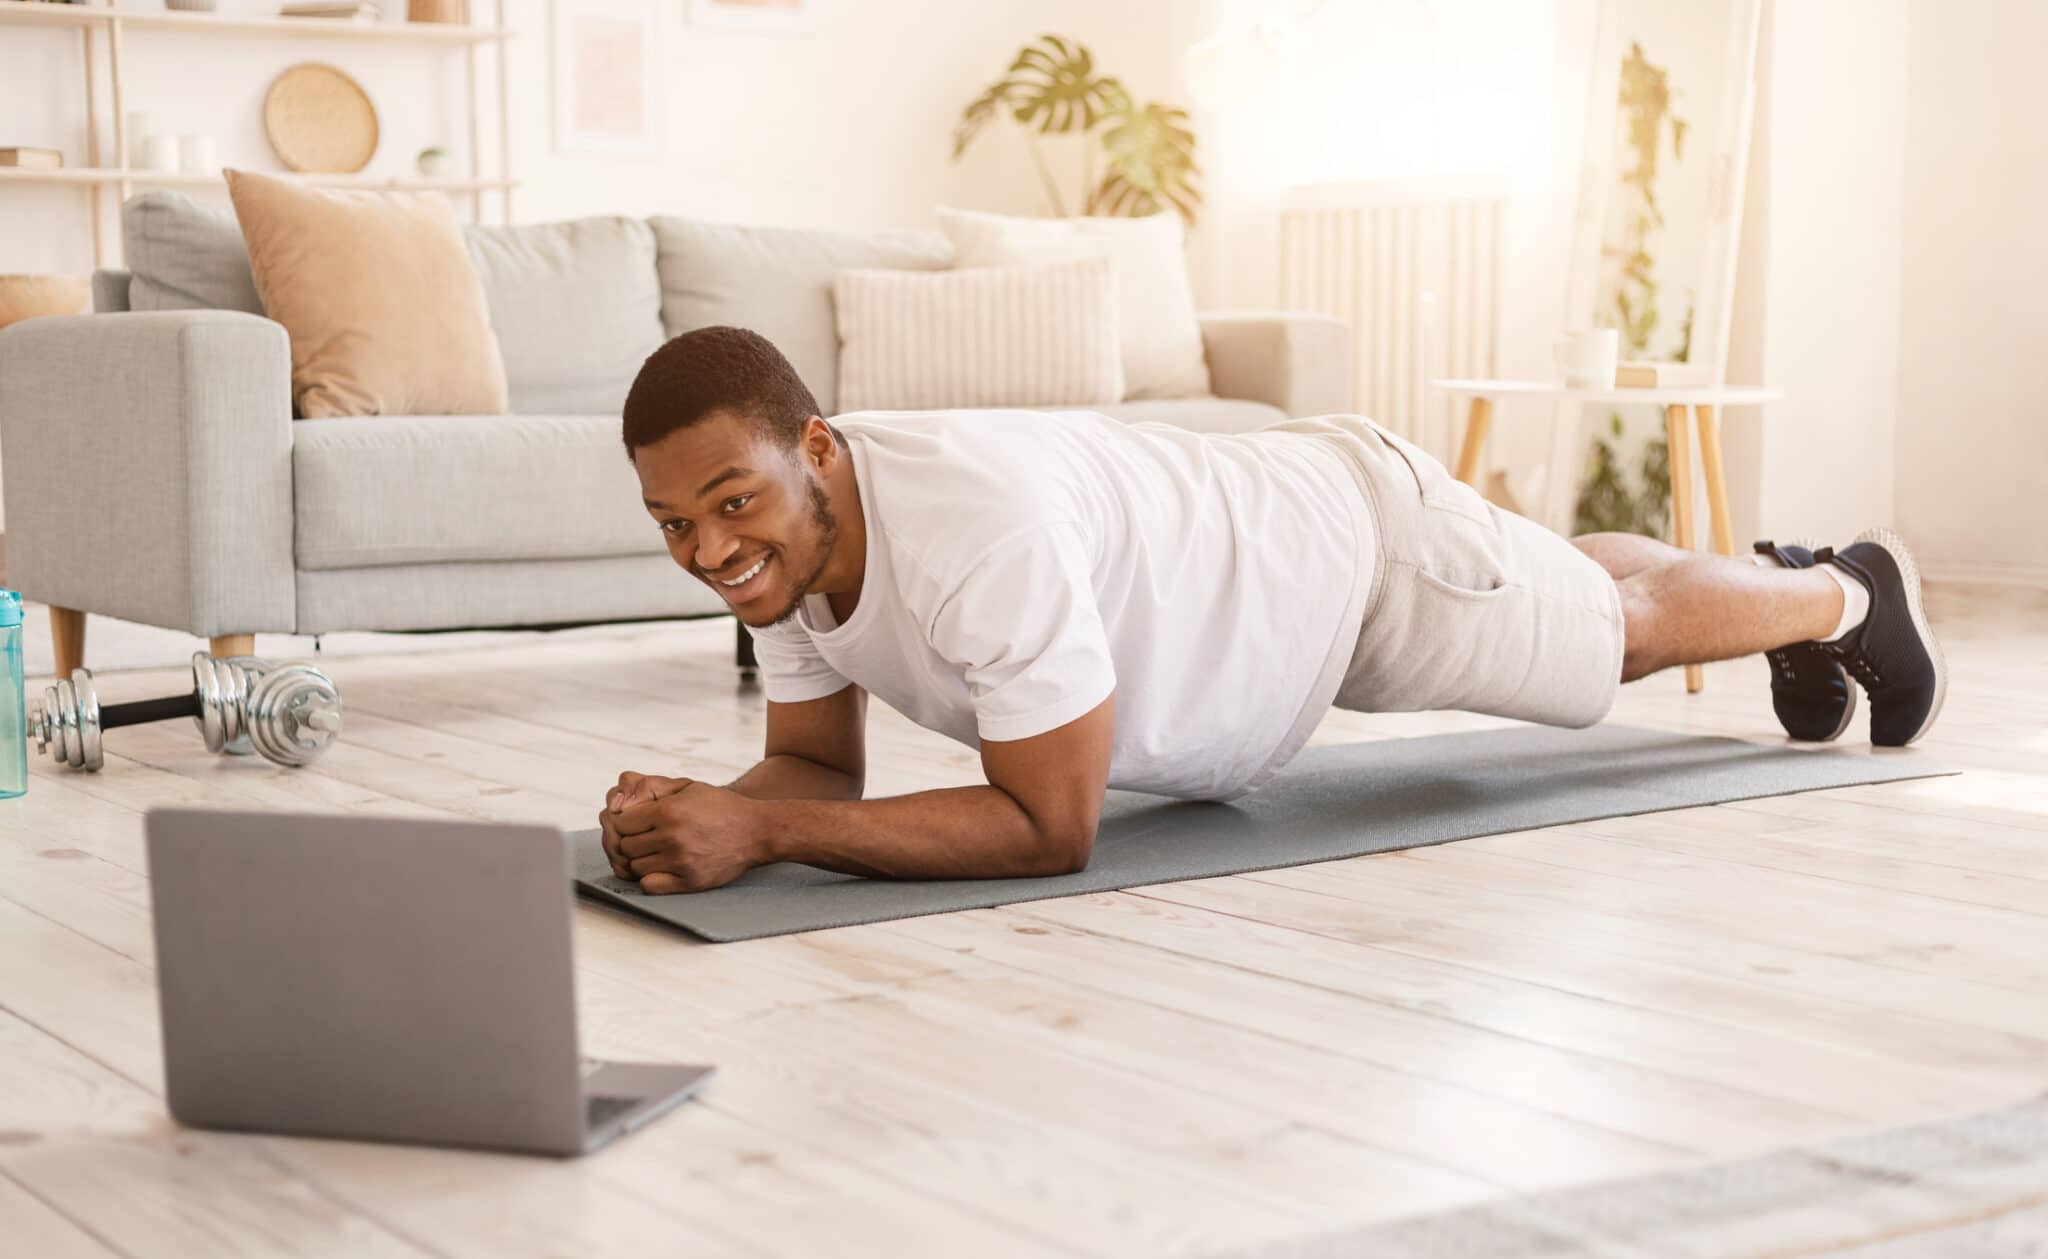 Viral fitness challenges